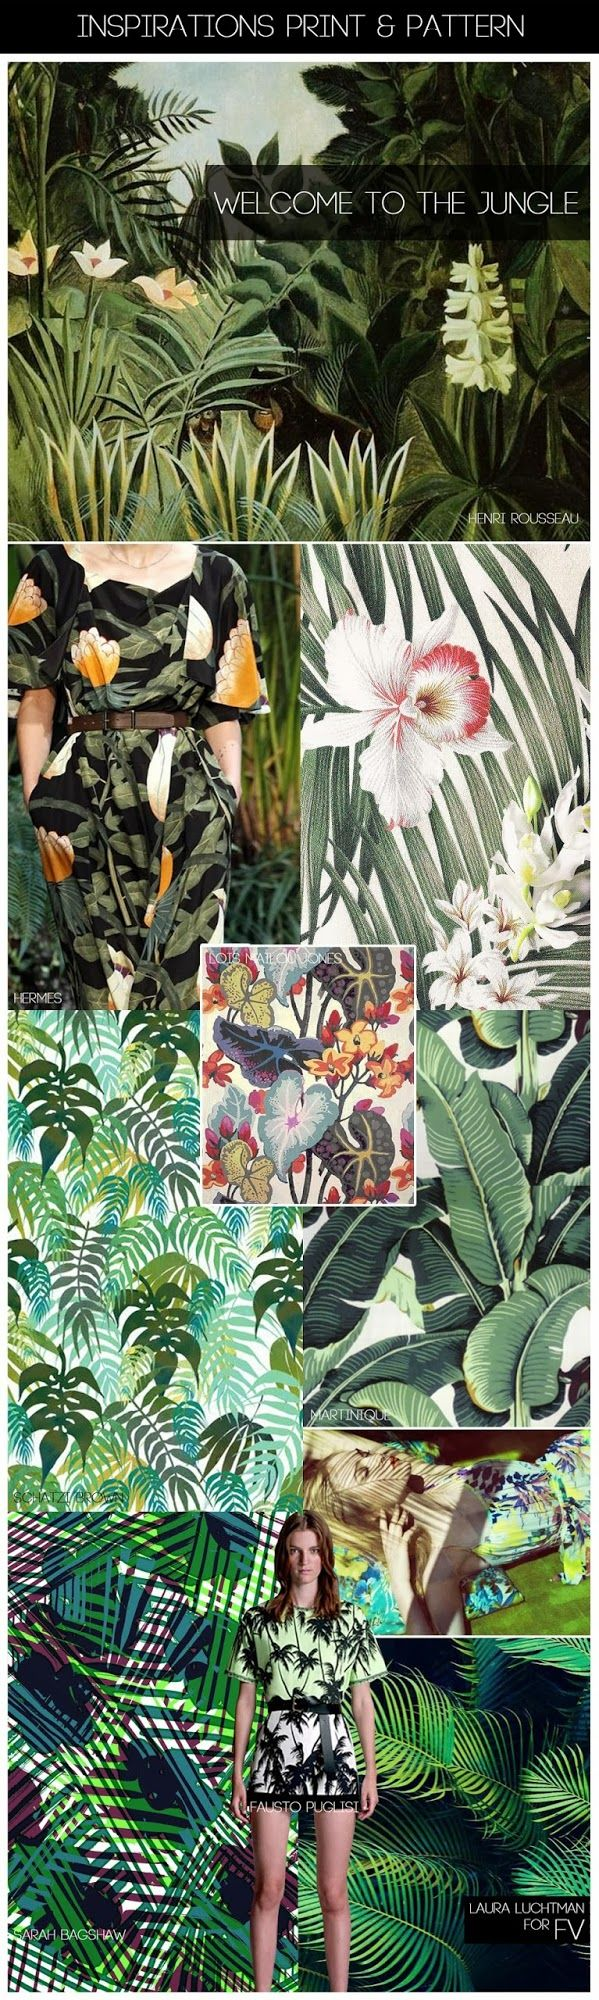 [ INSPIRATIONS PRINT + PATTERN ] KUKKA by Laura Luchtman - SS 2015 WELCOME TO THE JUNGLE - FASHION VIGNETTE